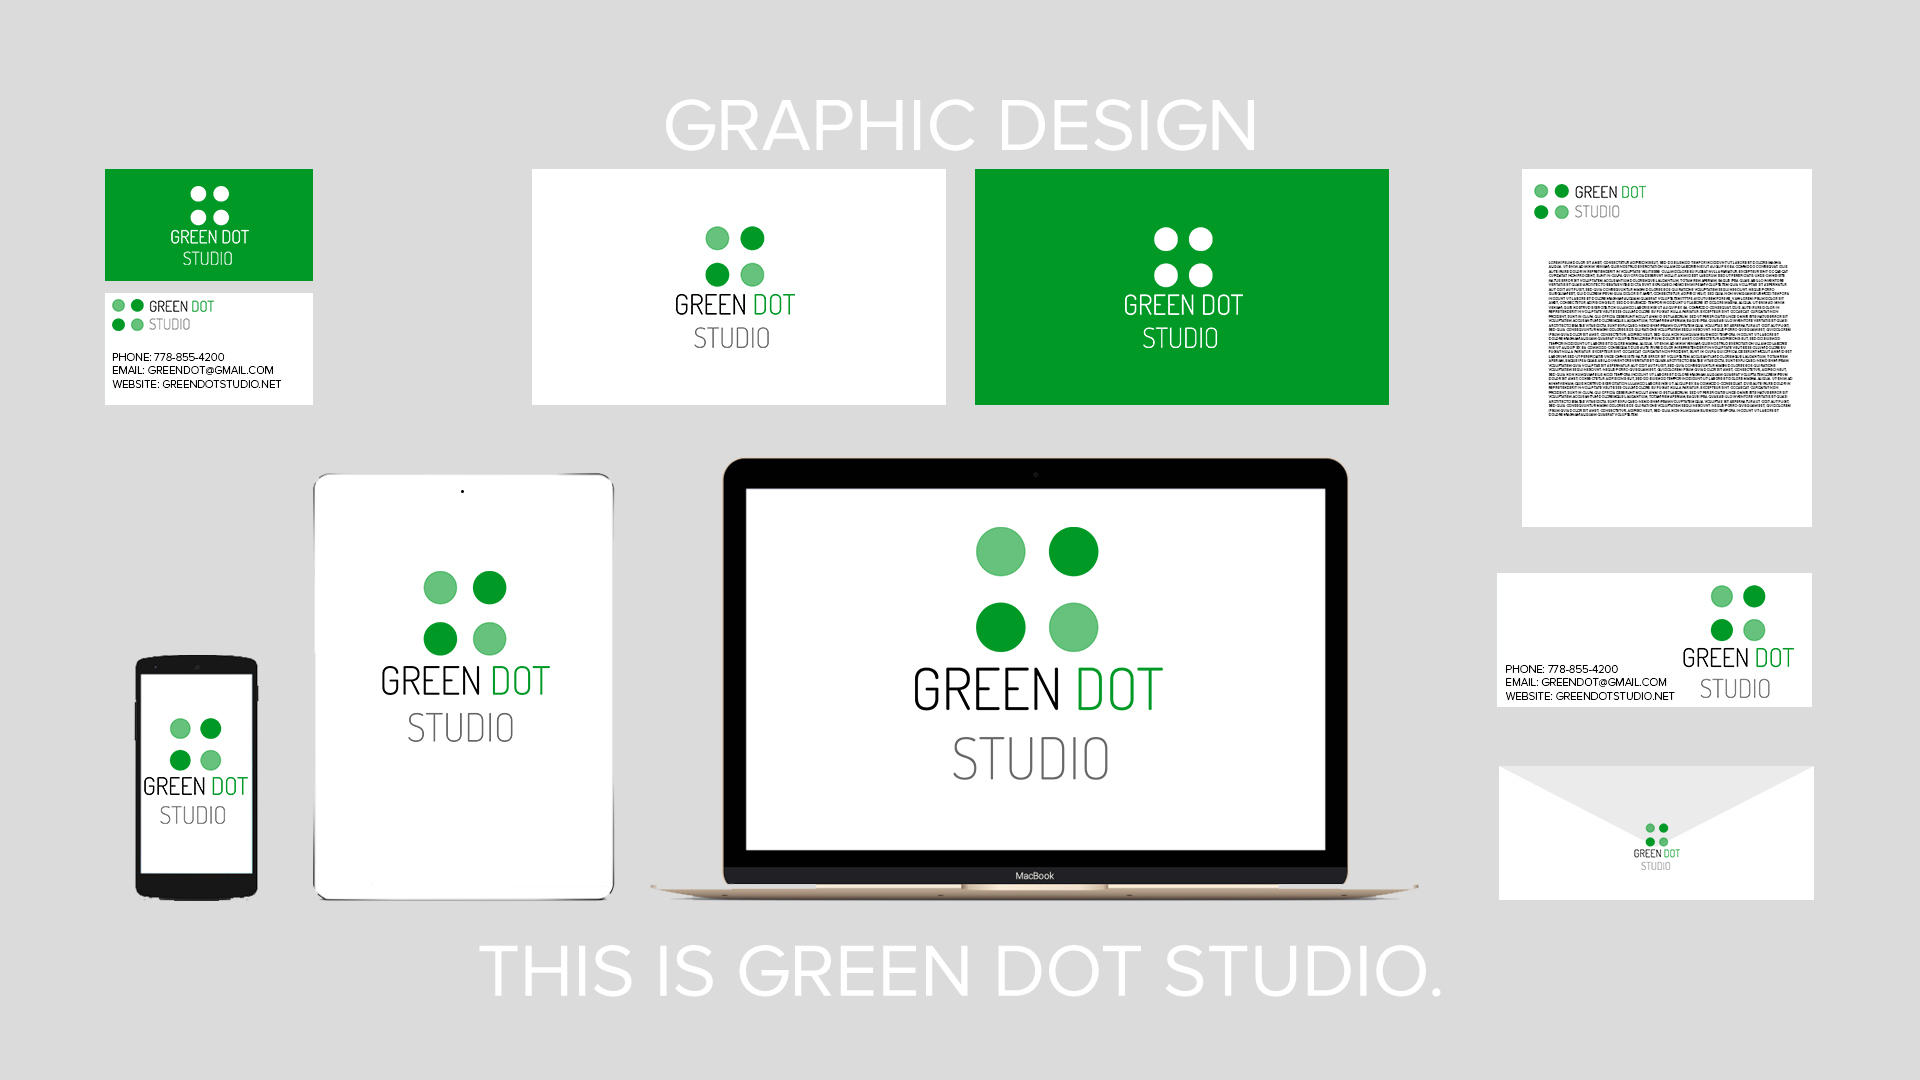 Graphic Design    This is Green Dot Studio.